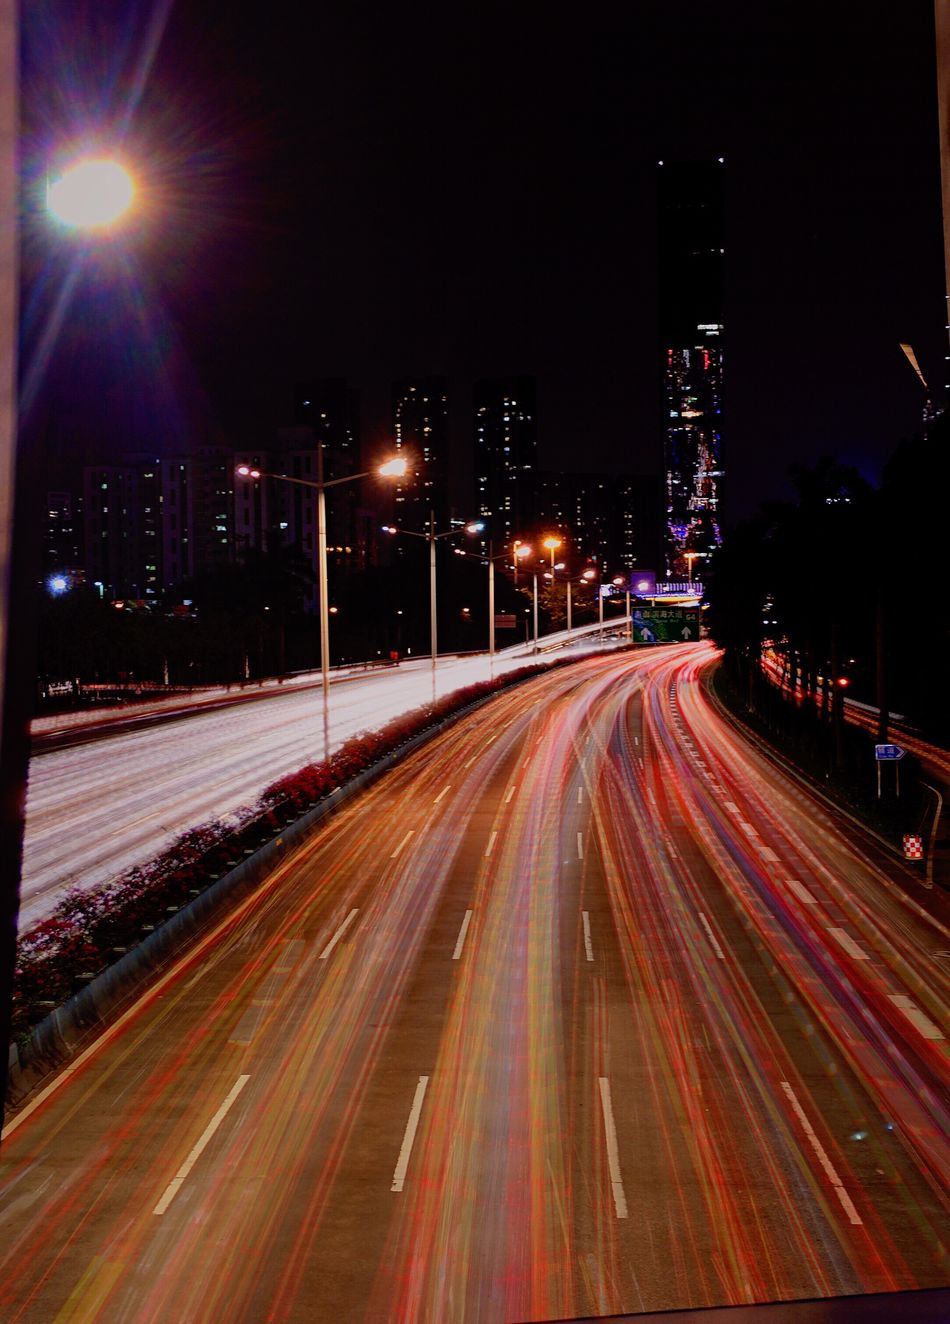 Speed Illuminated Light Trail Motion Night Long Exposure High Street Building Exterior Blurred Motion Street Light Street Outdoors Transportation Architecture No People Urban Scene Road City Sky